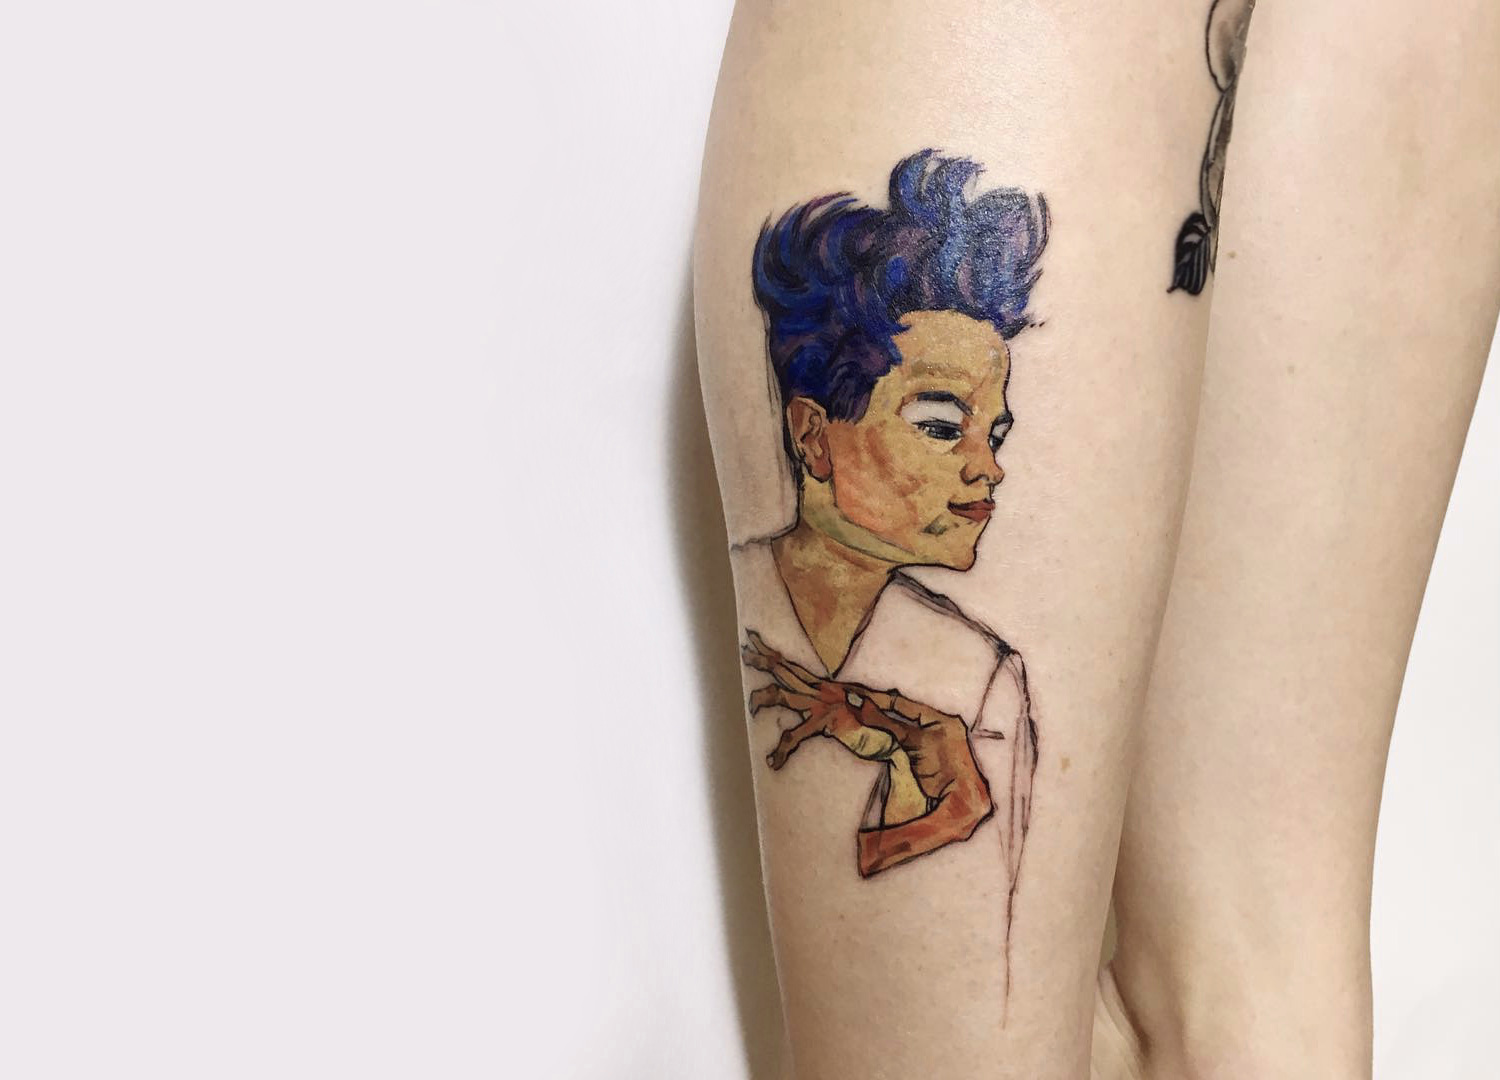 Rit Kit Tattoo Egon Schiele self portrait